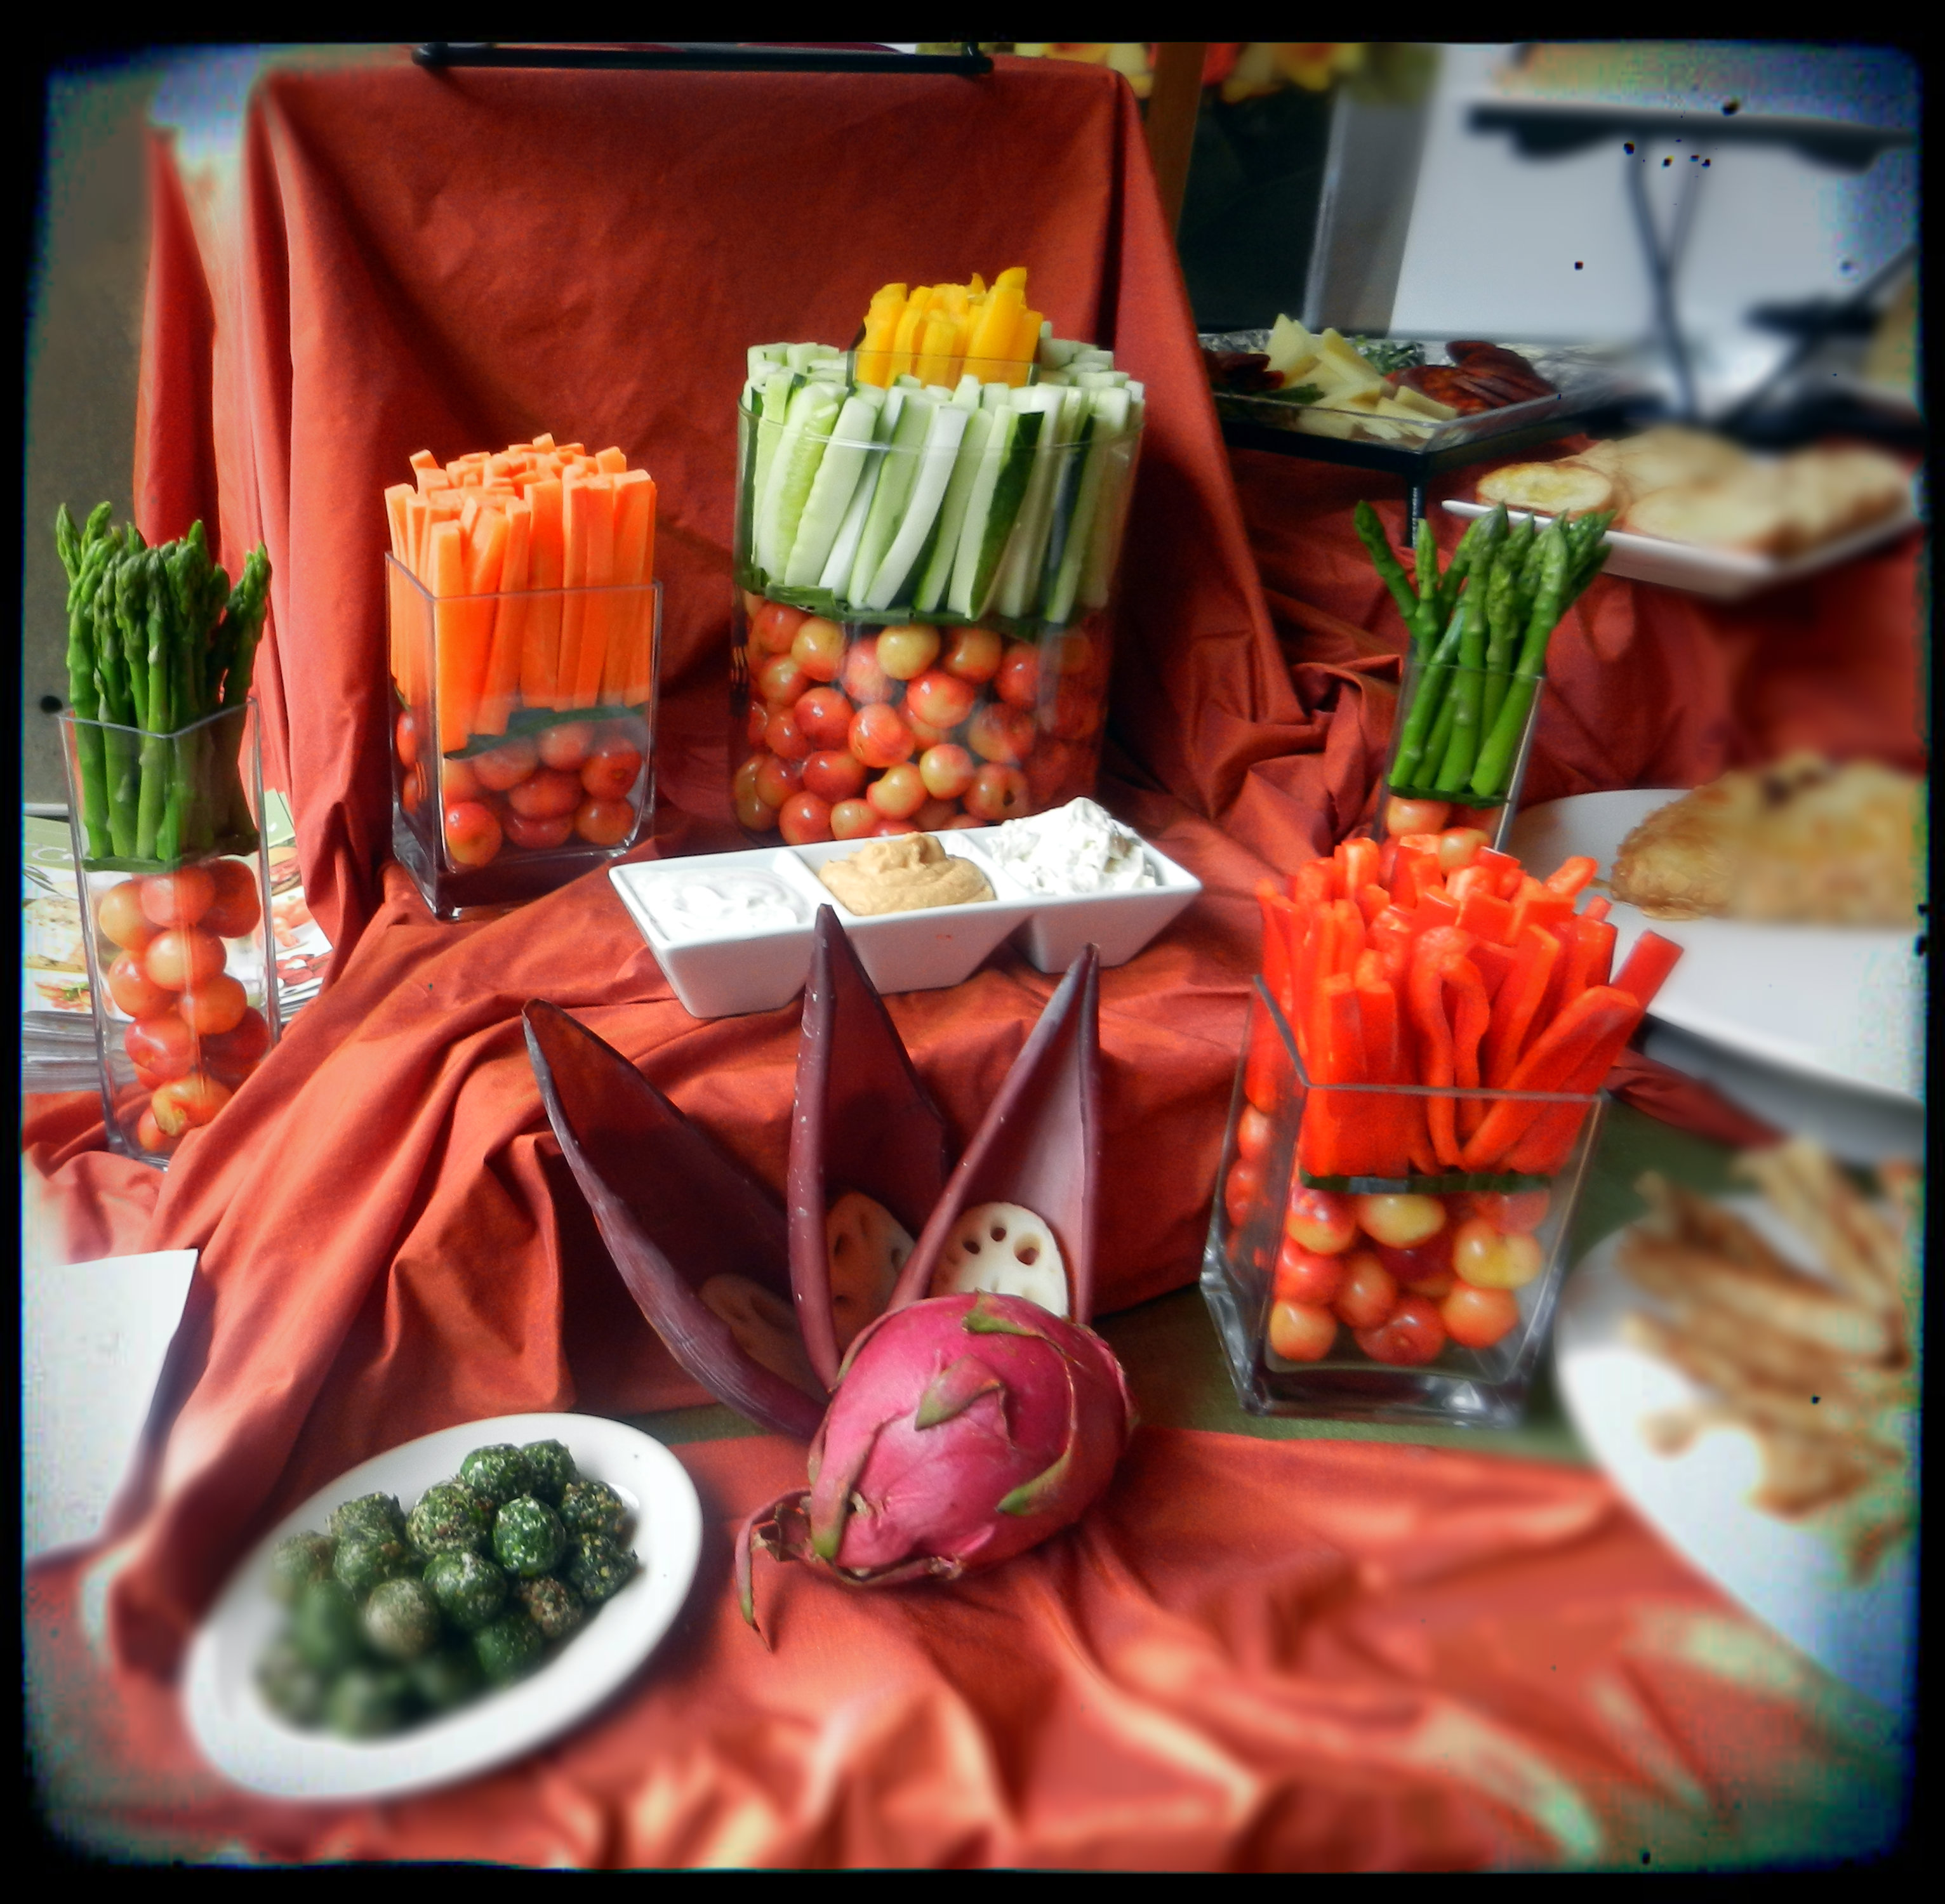 GRAND Galleries Archive Chefs Table Catering Catering In - The chef's table catering